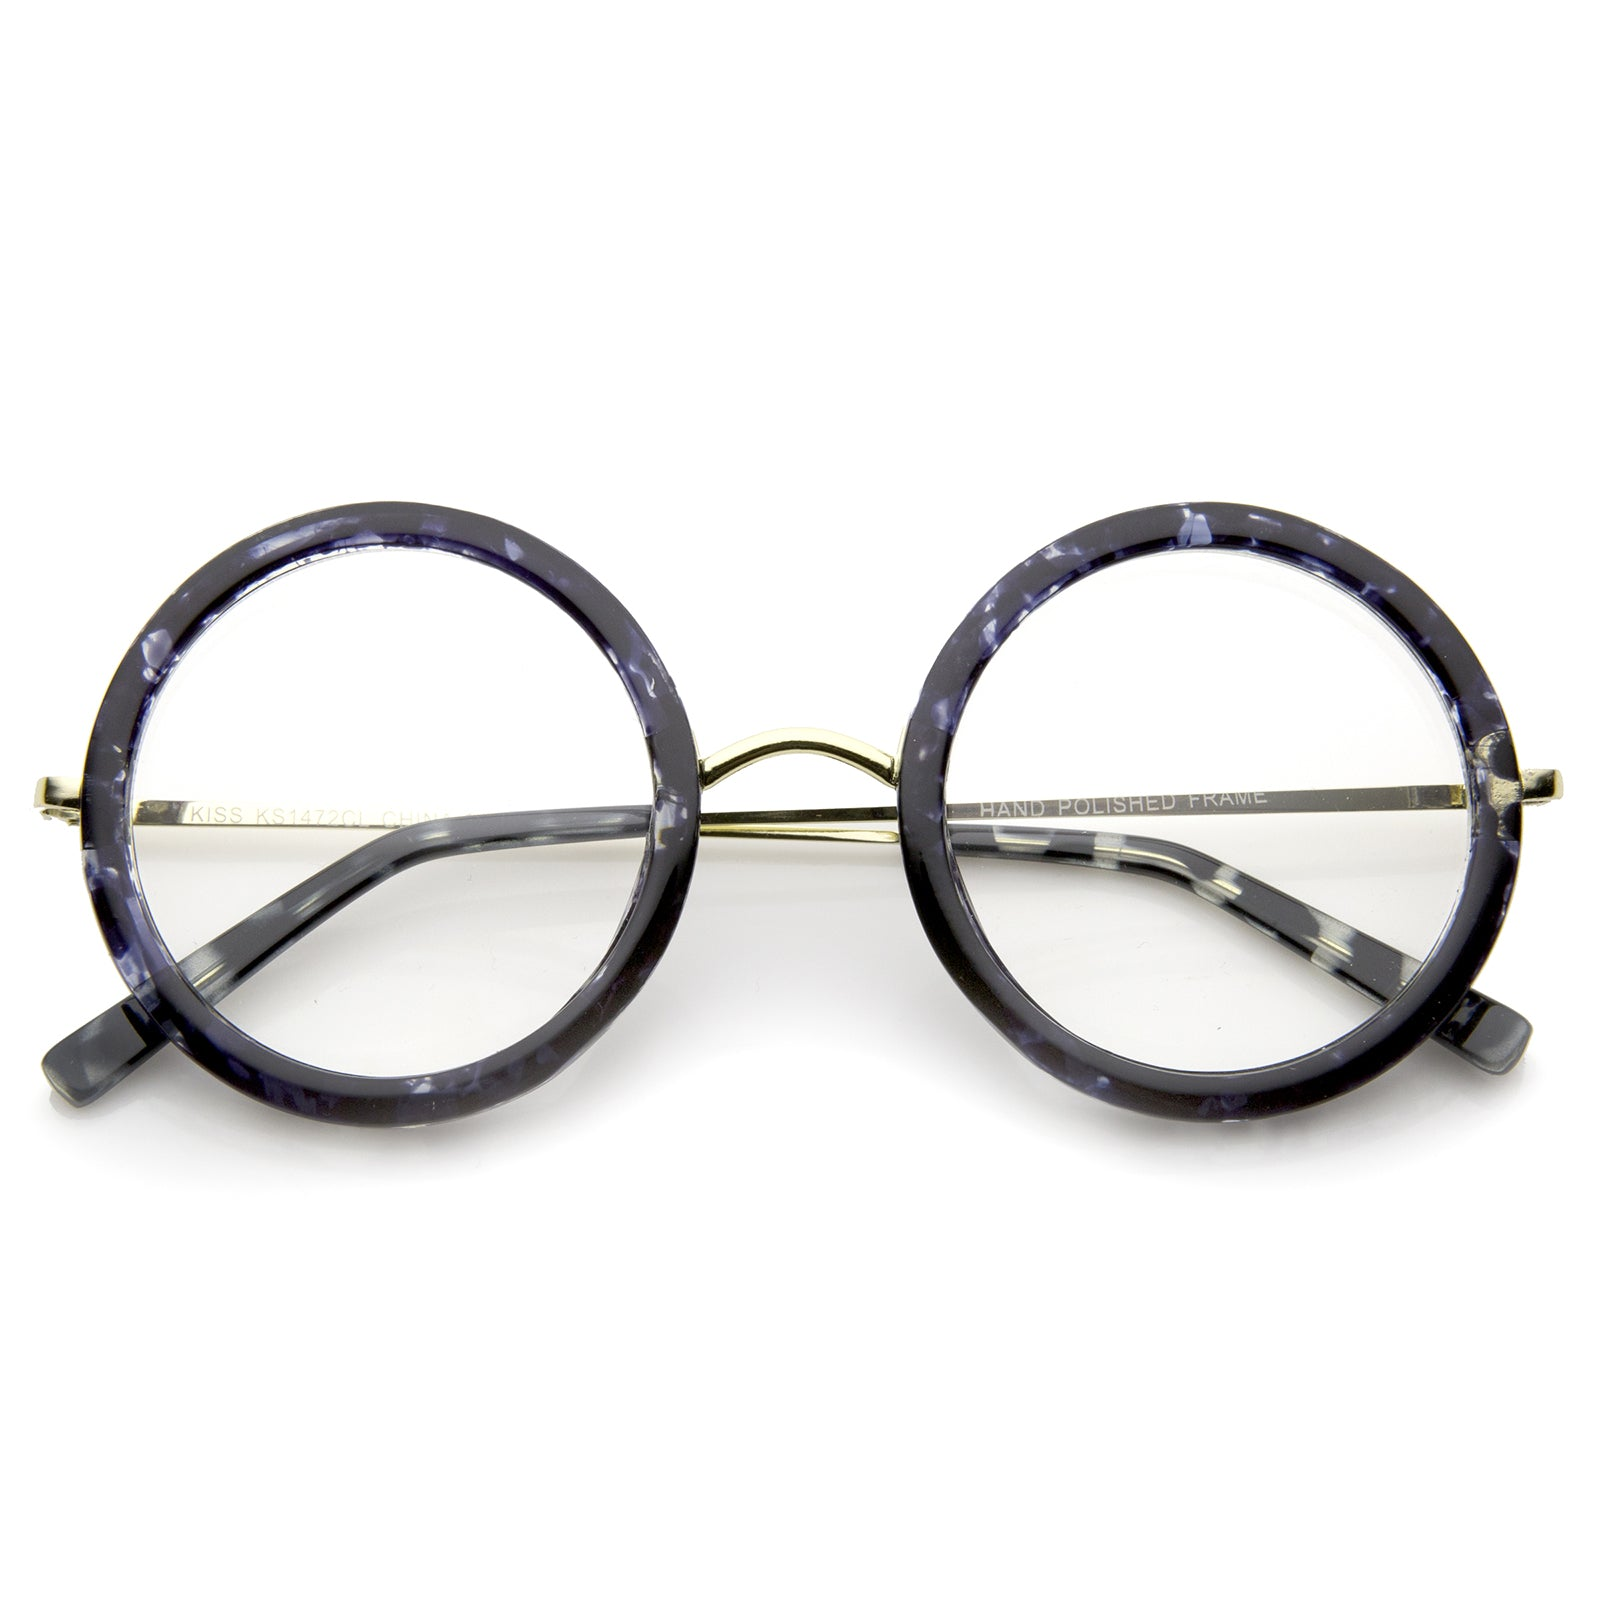 Lennon Retro Fashion Thick Frame Metal Temple Round Clear Lens Glasses 50mm - sunglass.la - 5